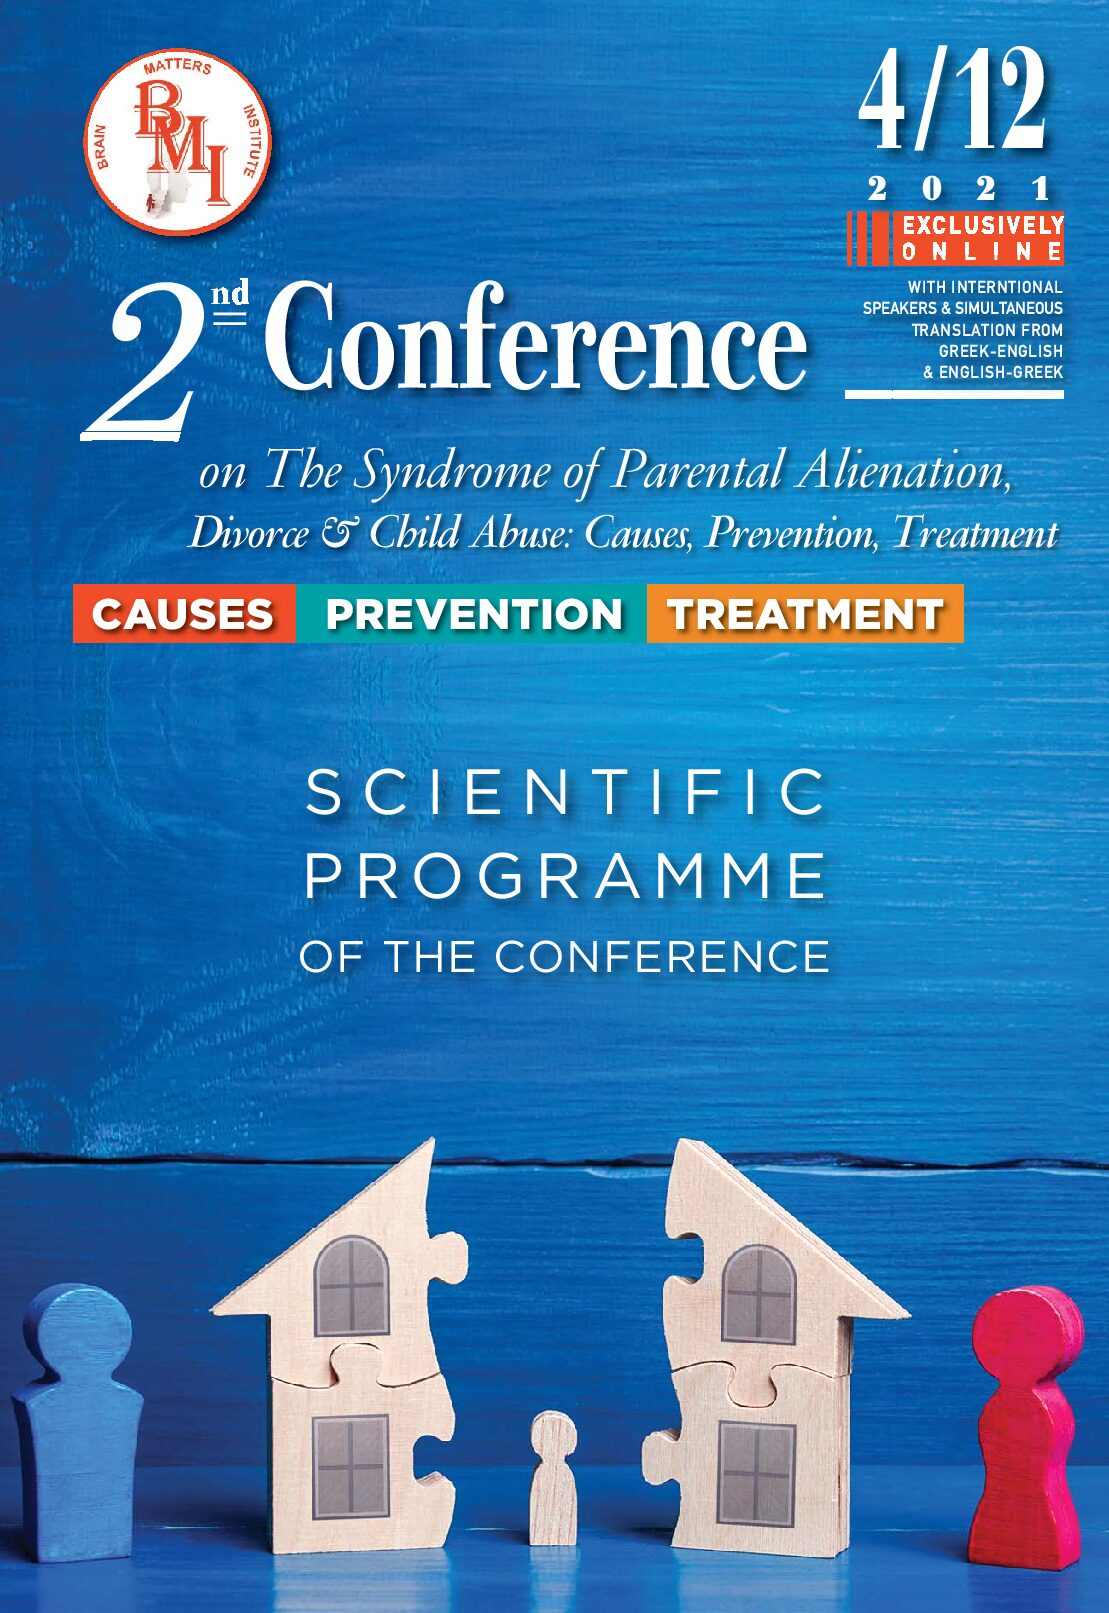 2nd Conference On The Syndrome Of Parental Alienation, Divorce & Child Abuse: Causes, Prevention, Treatment